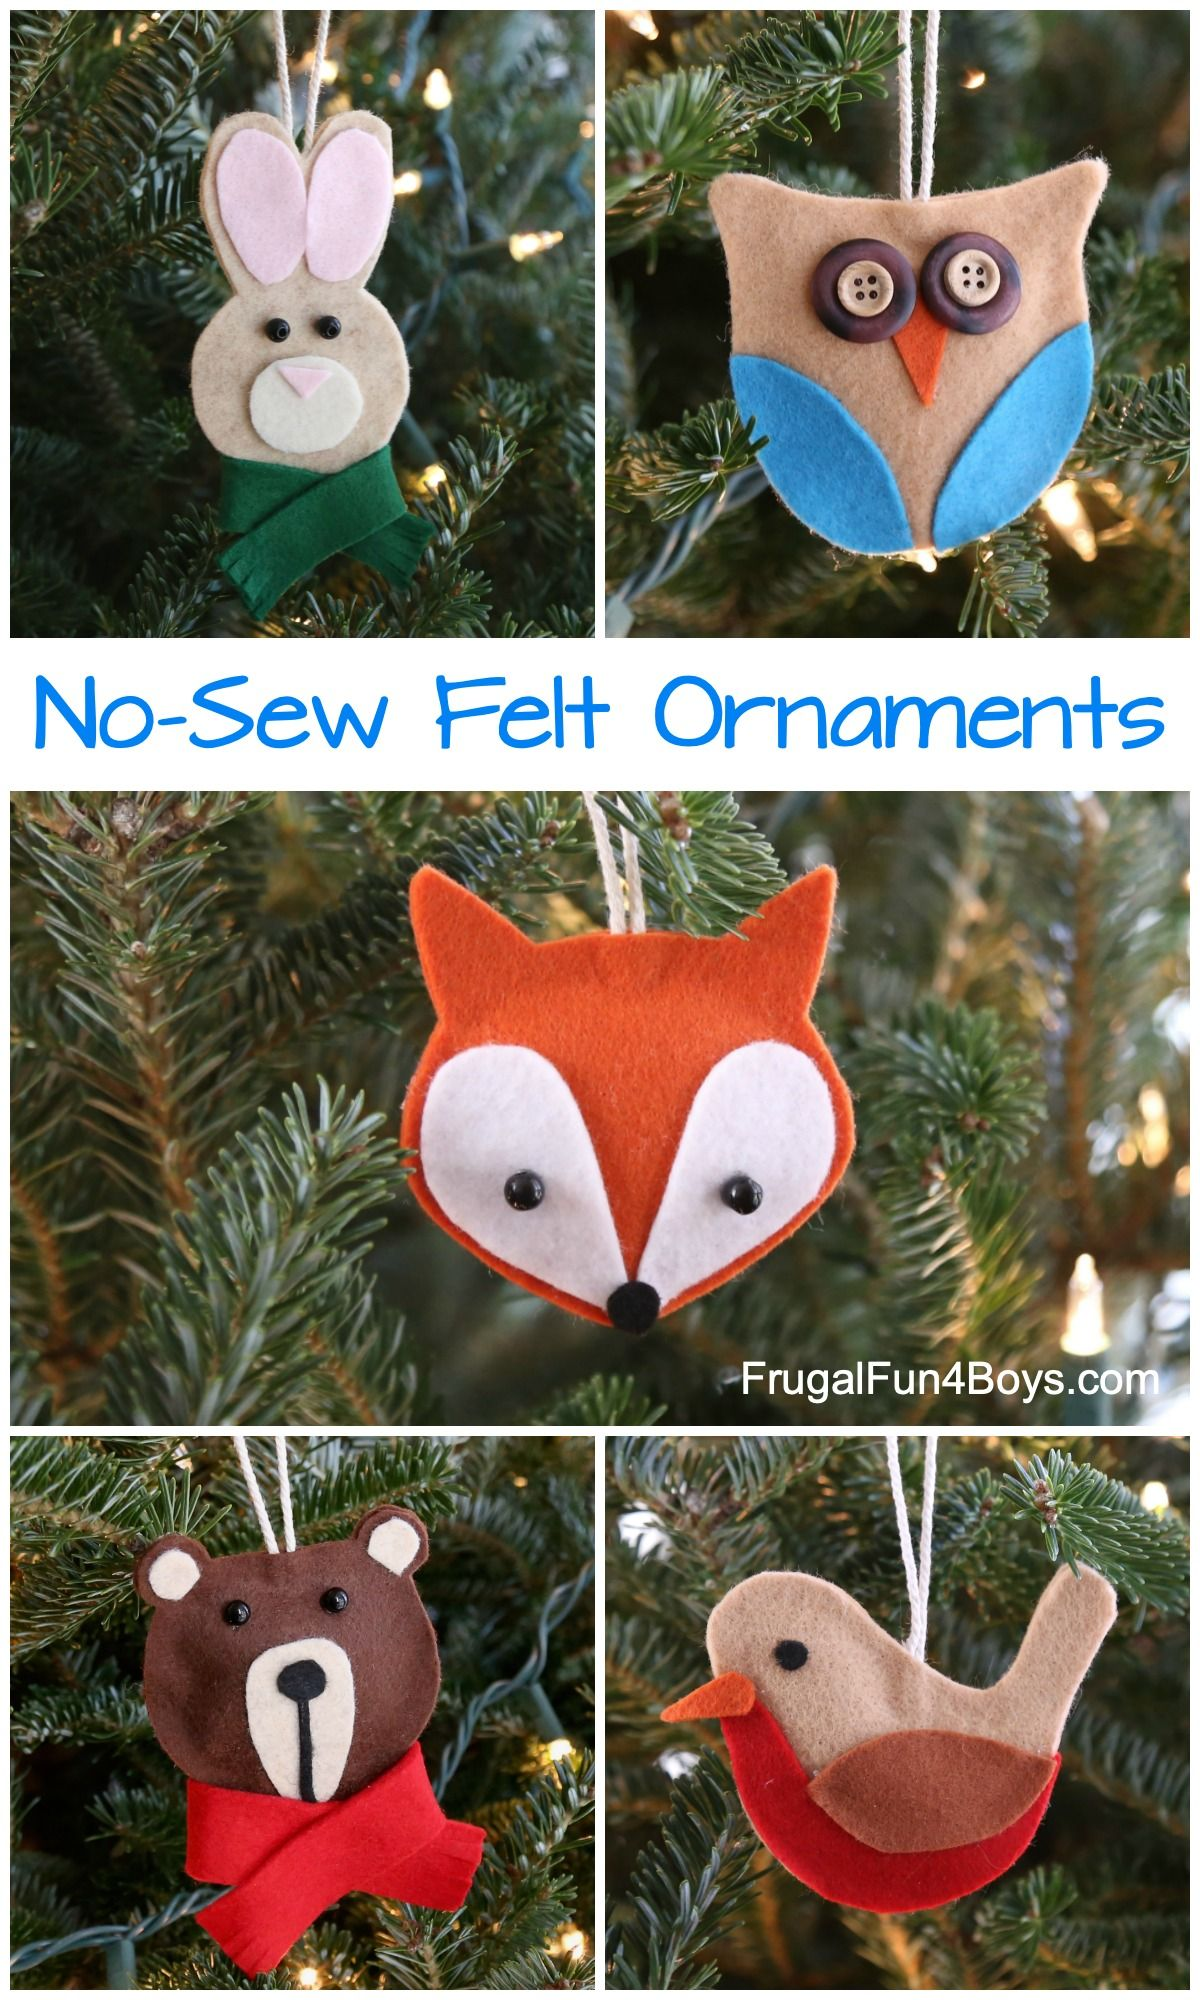 The Cutest Ever No-Sew Felt Woodland Animal Christmas Ornaments #feltchristmasornaments